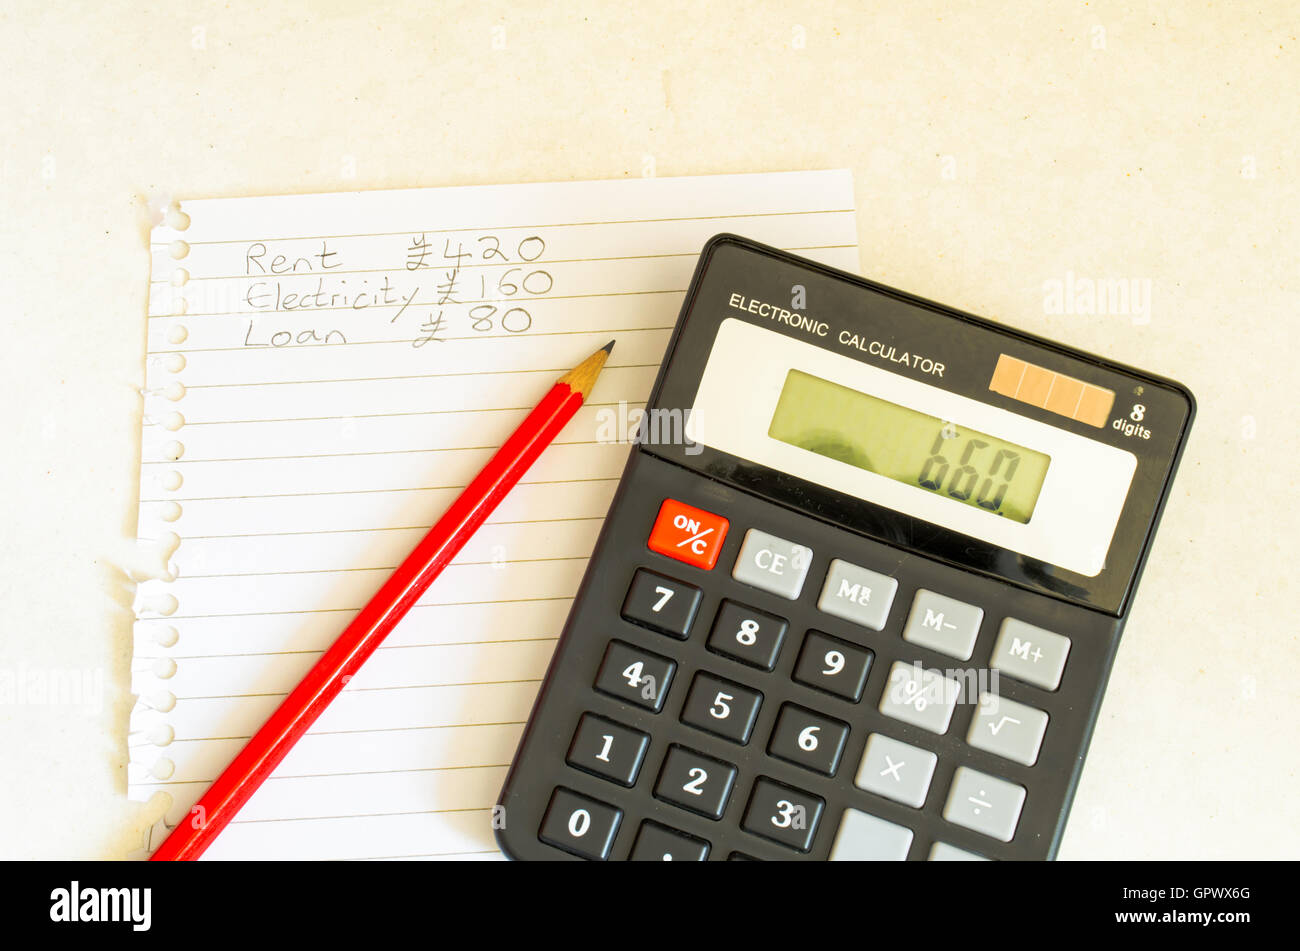 A Studio Photograph Showing the Concept of Household / Personal Finance Budgeting - Stock Image